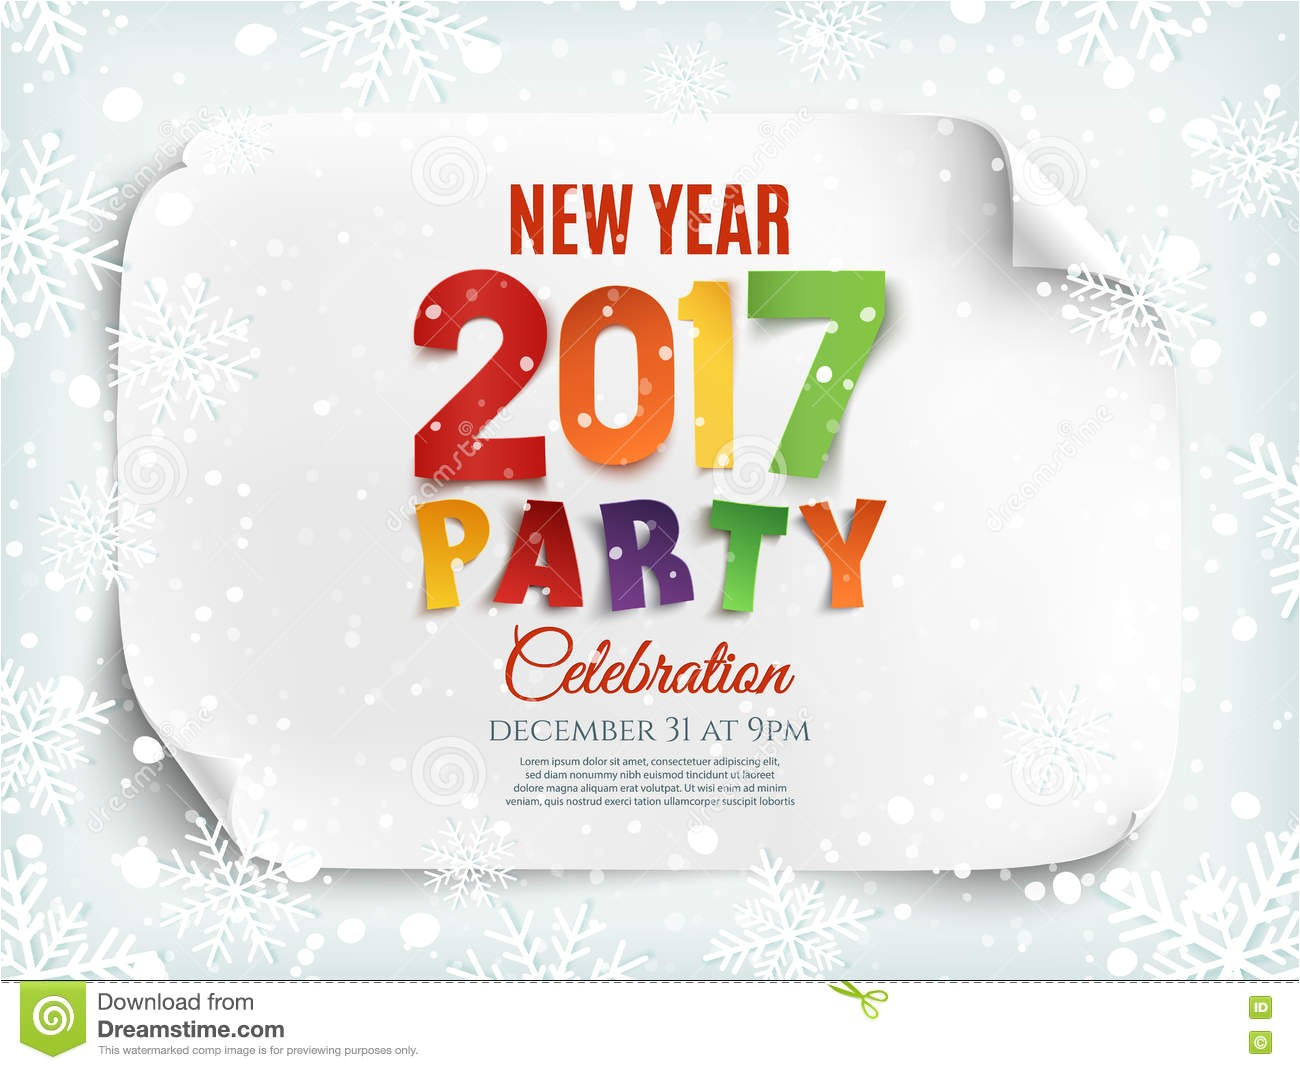 stock illustration new year party poster template snow snowflakes winter background perfect brochure flyer vector illustration image78780183